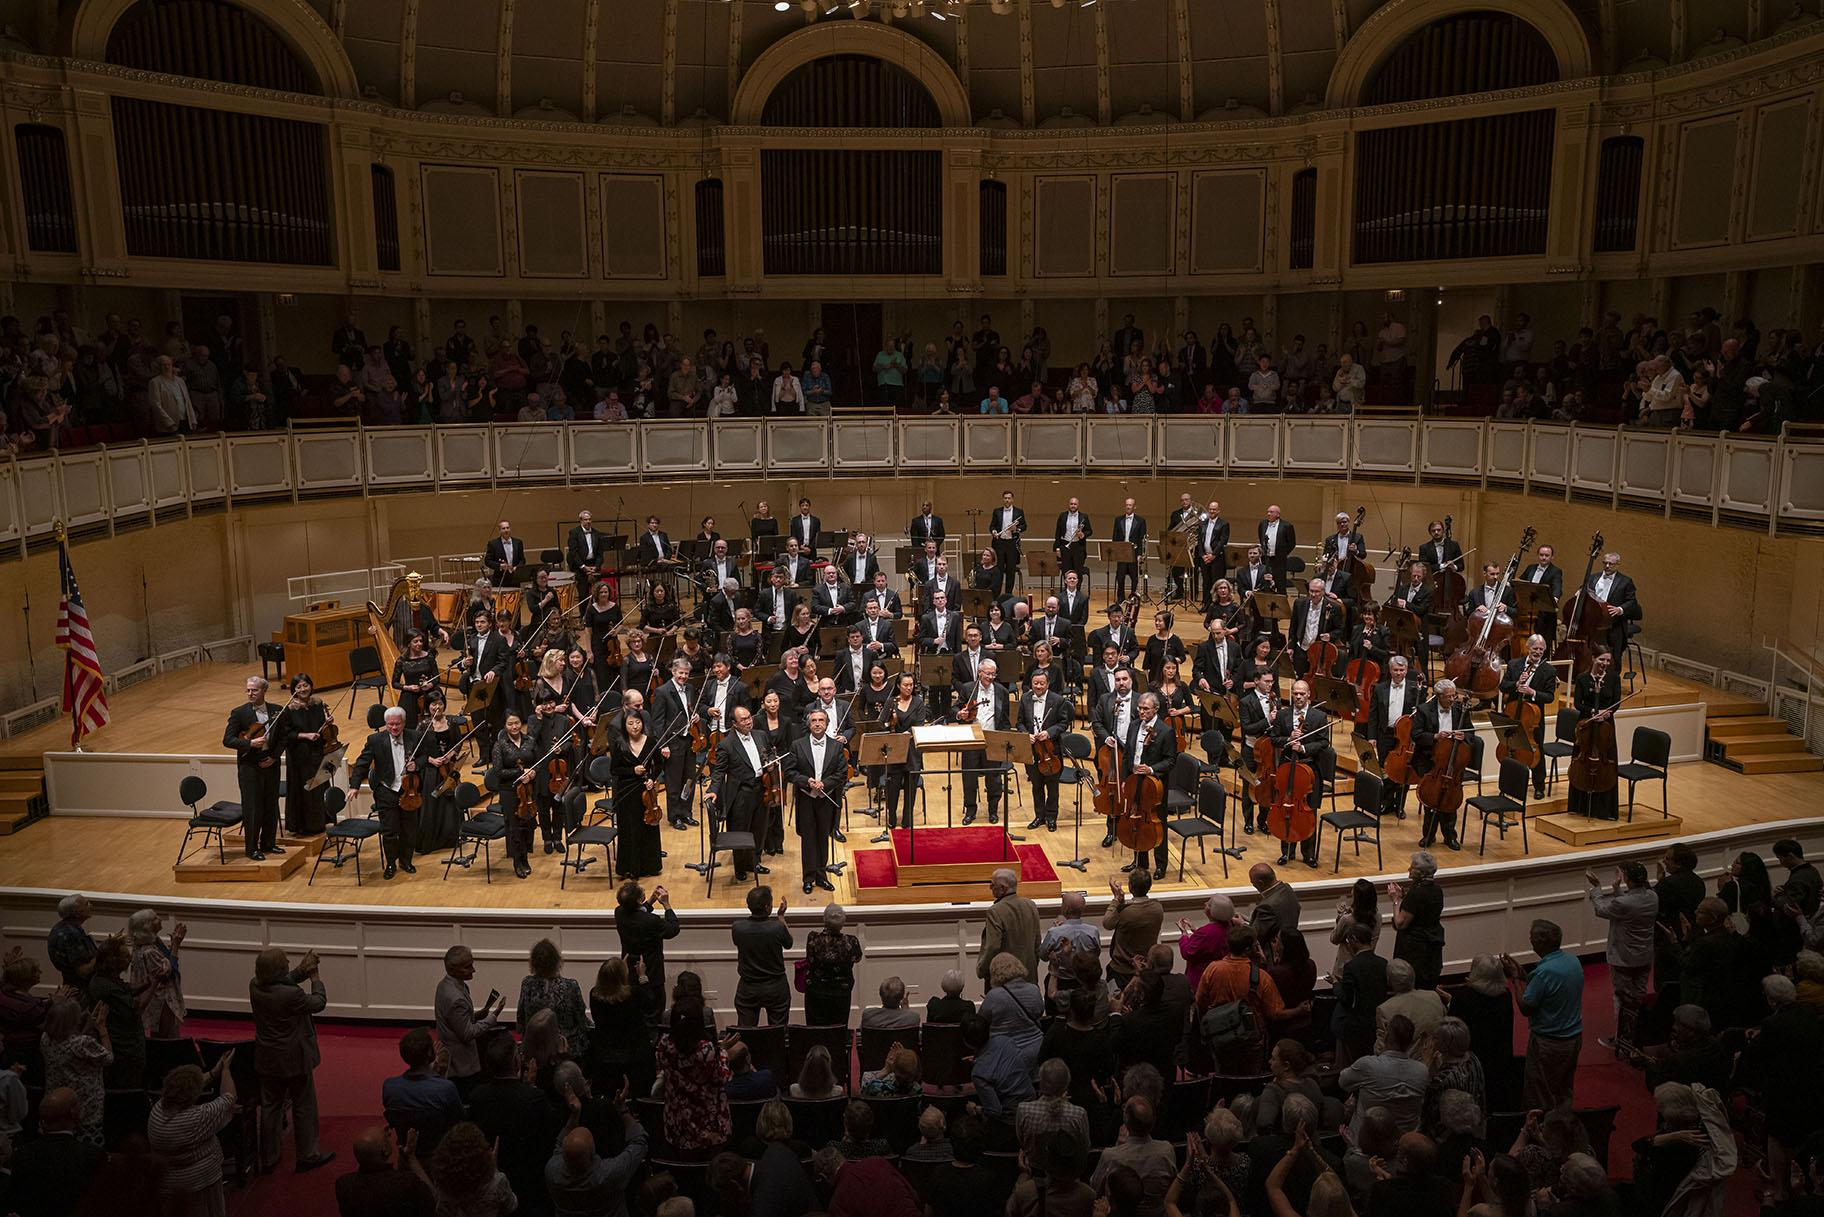 Riccardo Muti and the Chicago Symphony Orchestra acknowledge audience applause following their opening program of the 2019-'20 season on Sept. 19, 2019, in Orchestra Hall. (Photo by Todd Rosenberg)